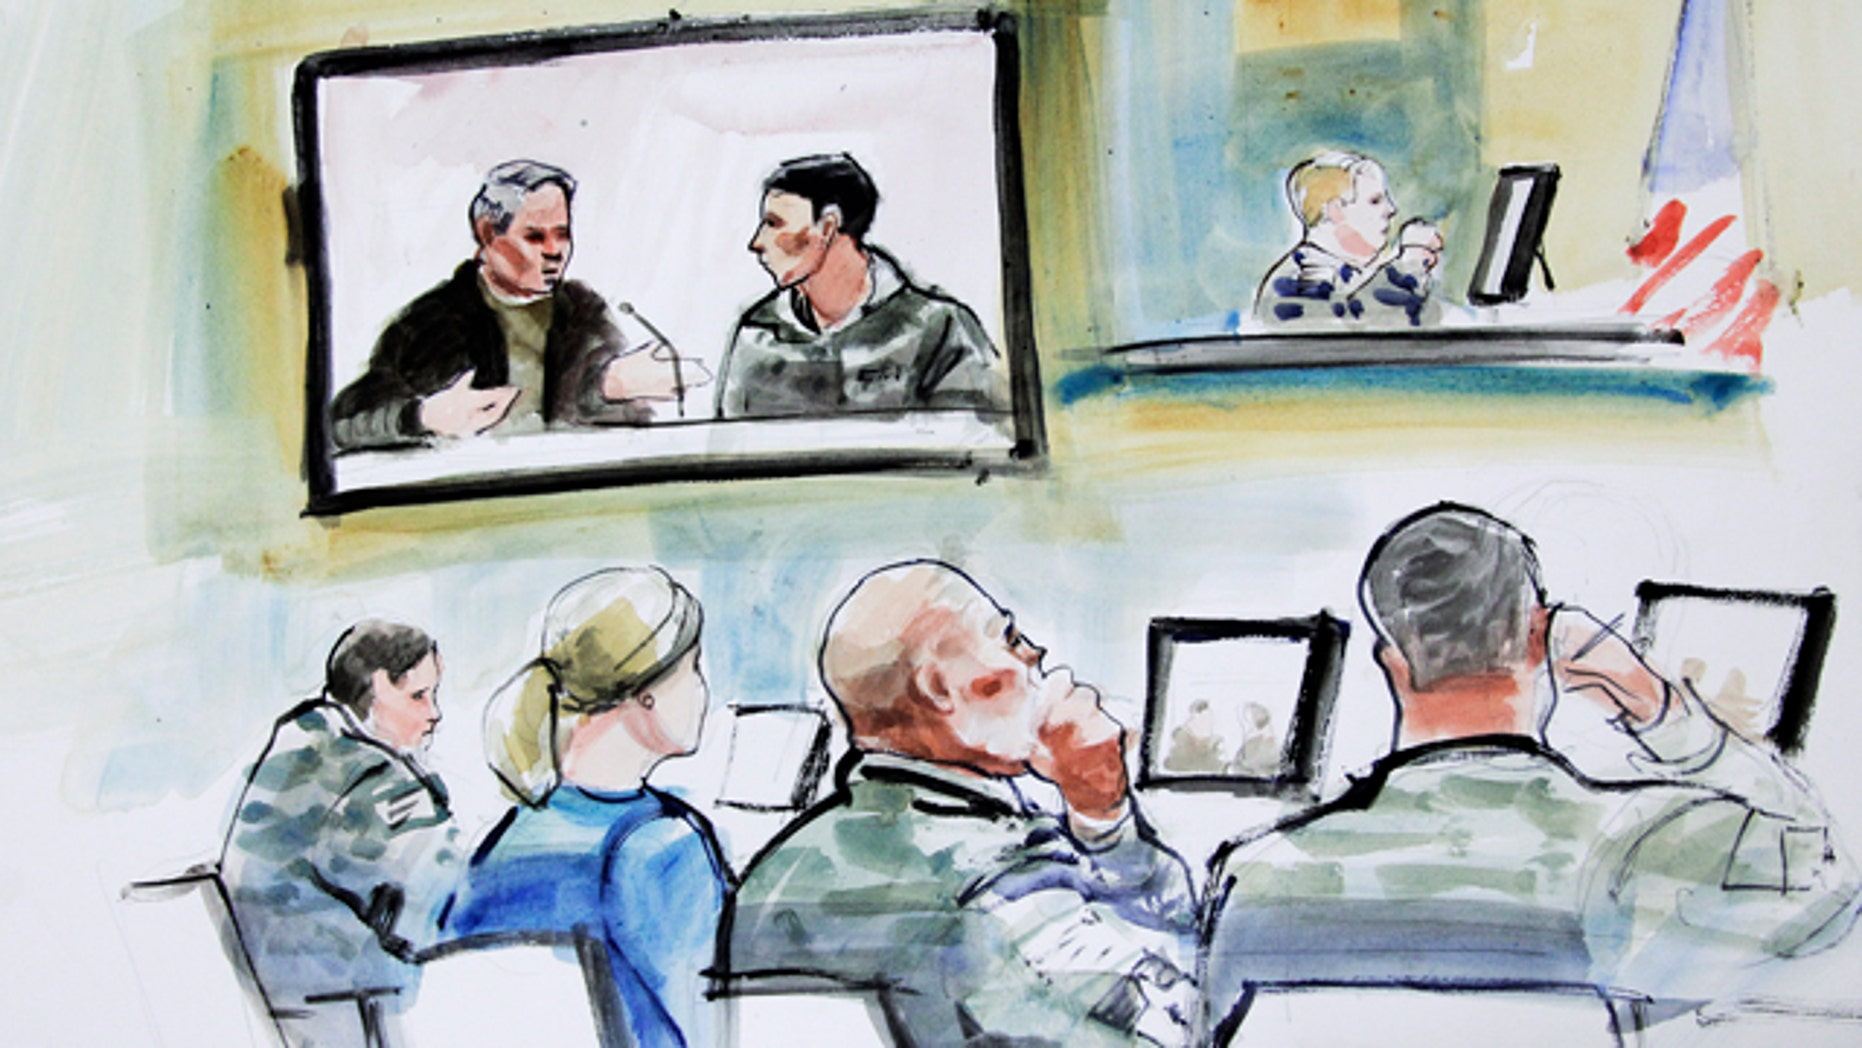 Nov. 9, 2012: In this courtroom sketch, a guard with the Afghan National Army named Nematullah is shown on the right-hand side of a video monitor as he testifies from Afghanistan in the military preliminary hearing of U.S. Army Staff Sgt. Robert Bales in a military courtroom in Washington state.